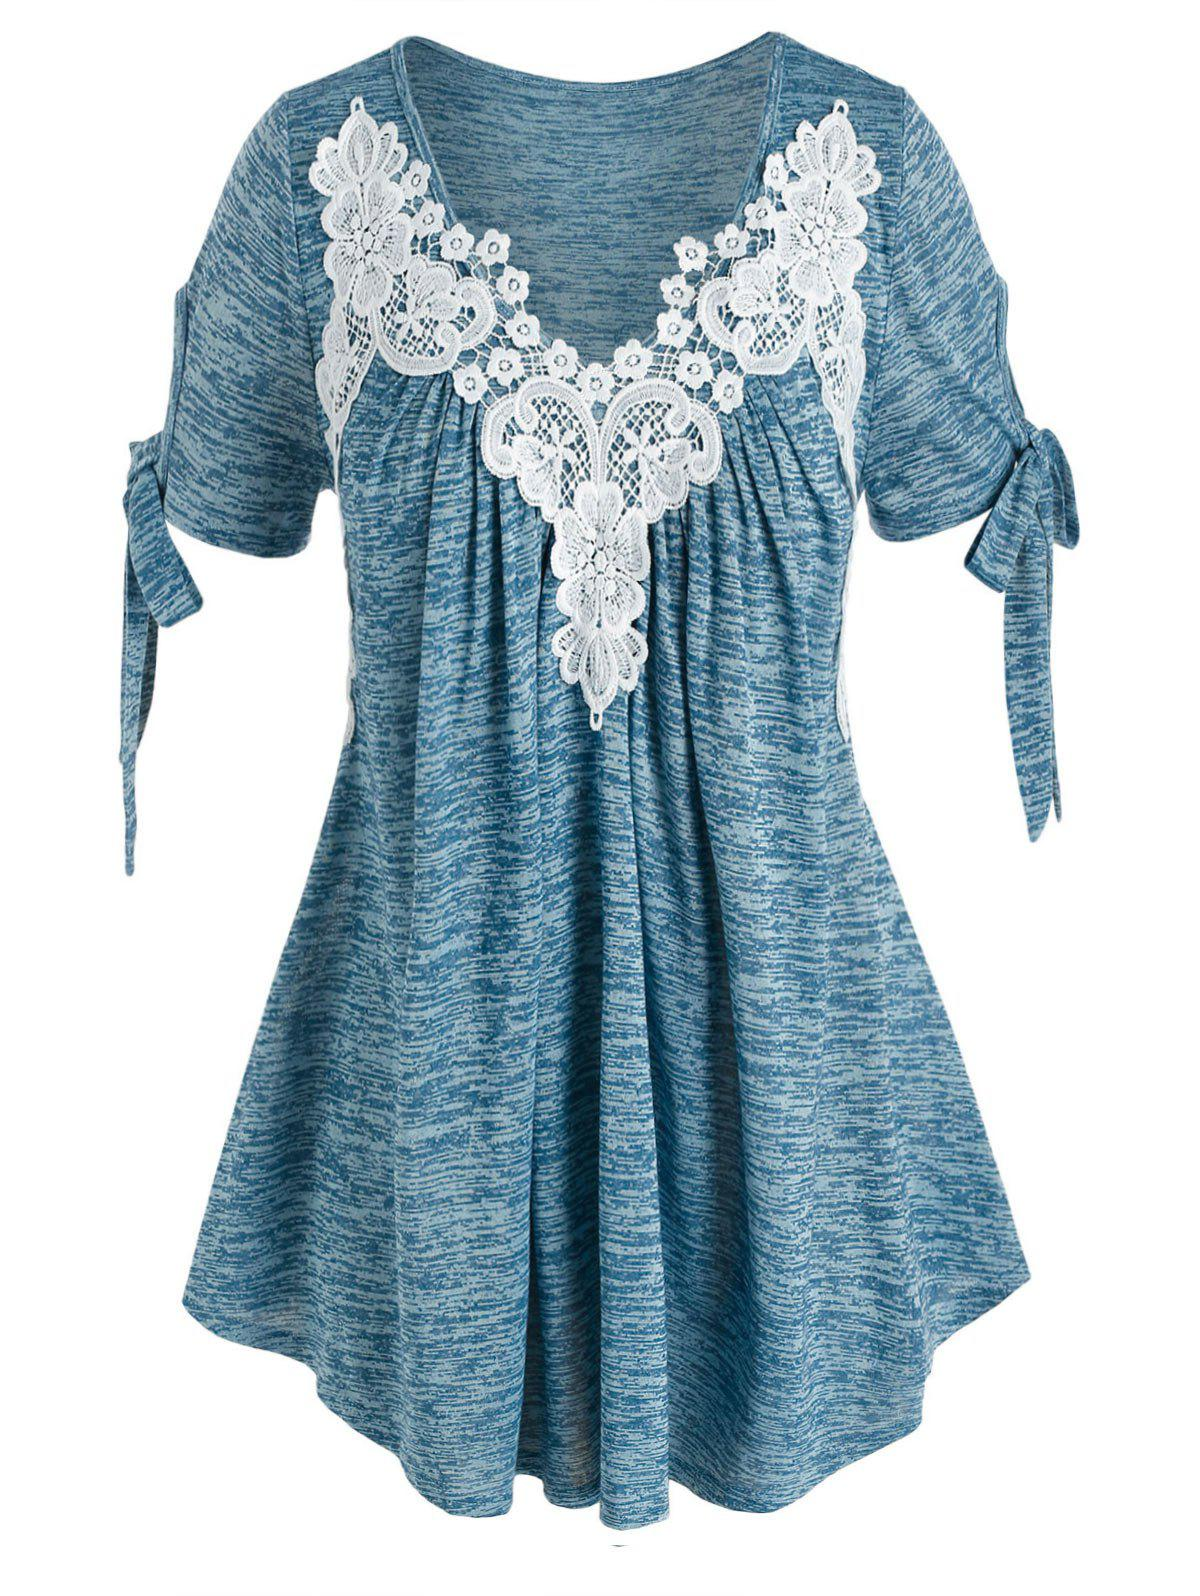 Fashion Plus Size Tie Sleeves Lace Applique Space Dye Tee